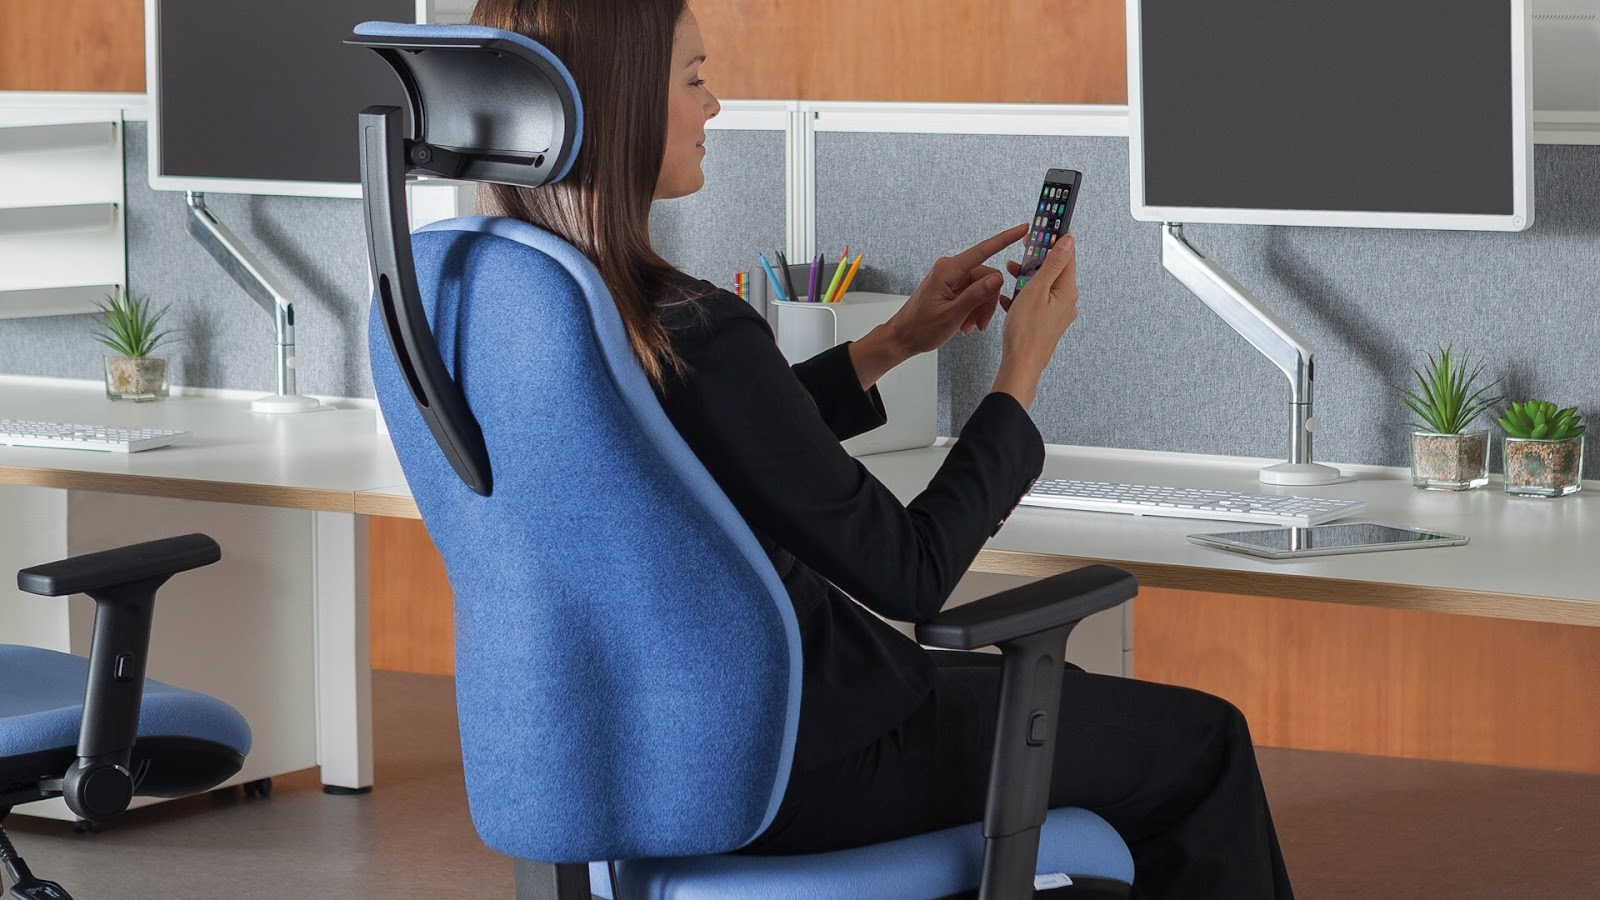 Orthopaedica high-back chair with headrest and arm rests